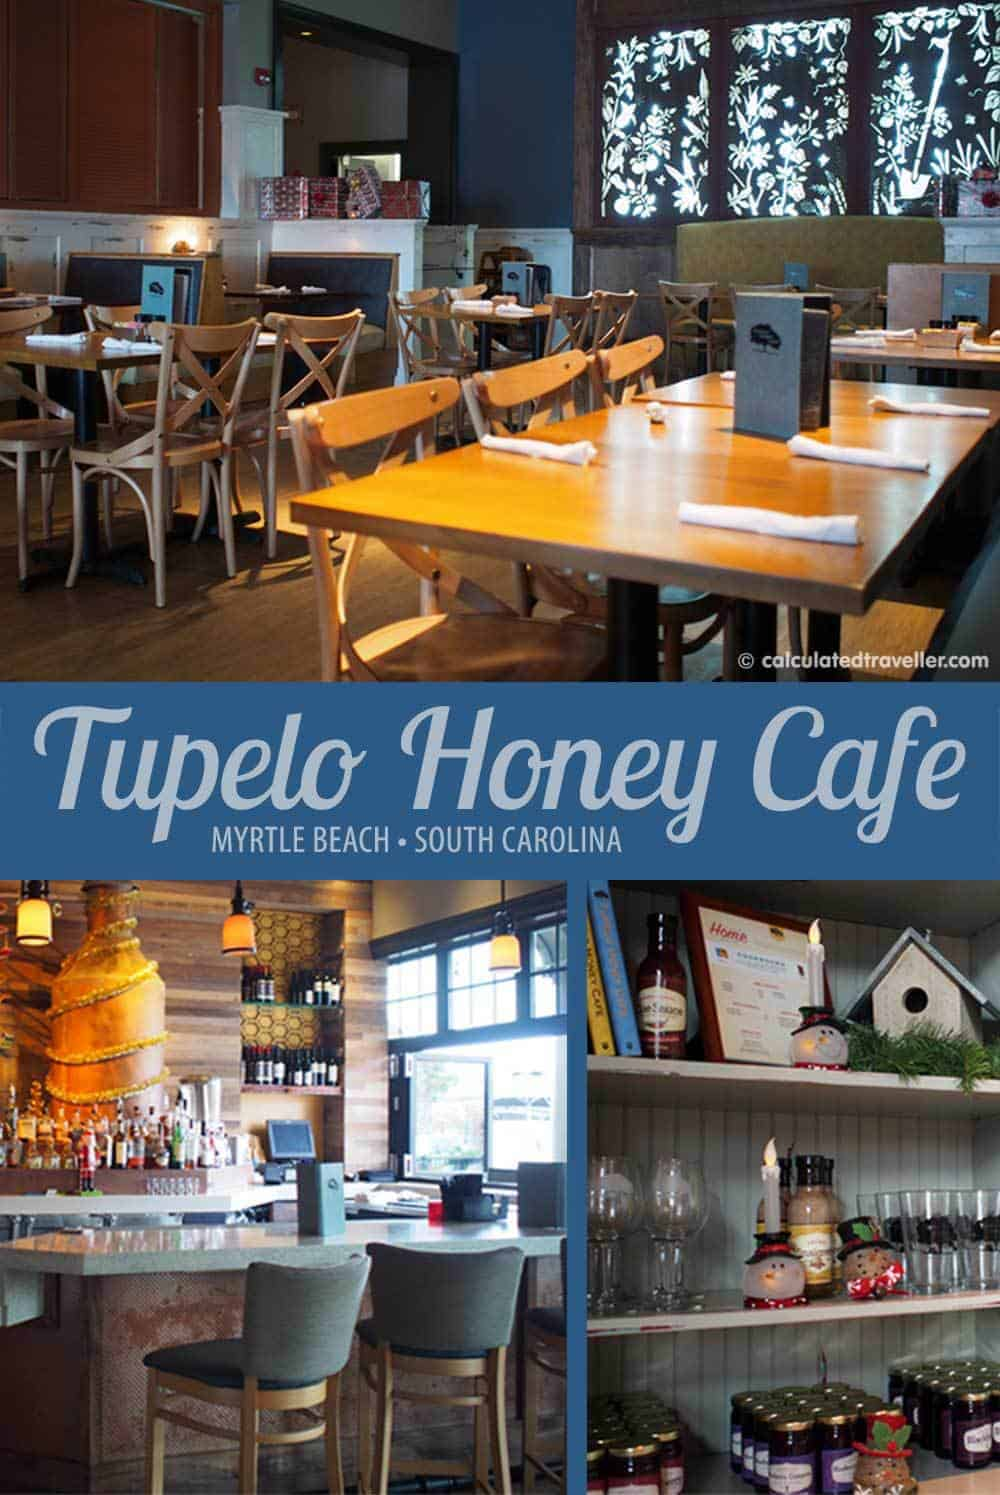 Tupelo Honey Cafe - The Market Common, Myrtle Beach, SC by Calculated Traveller